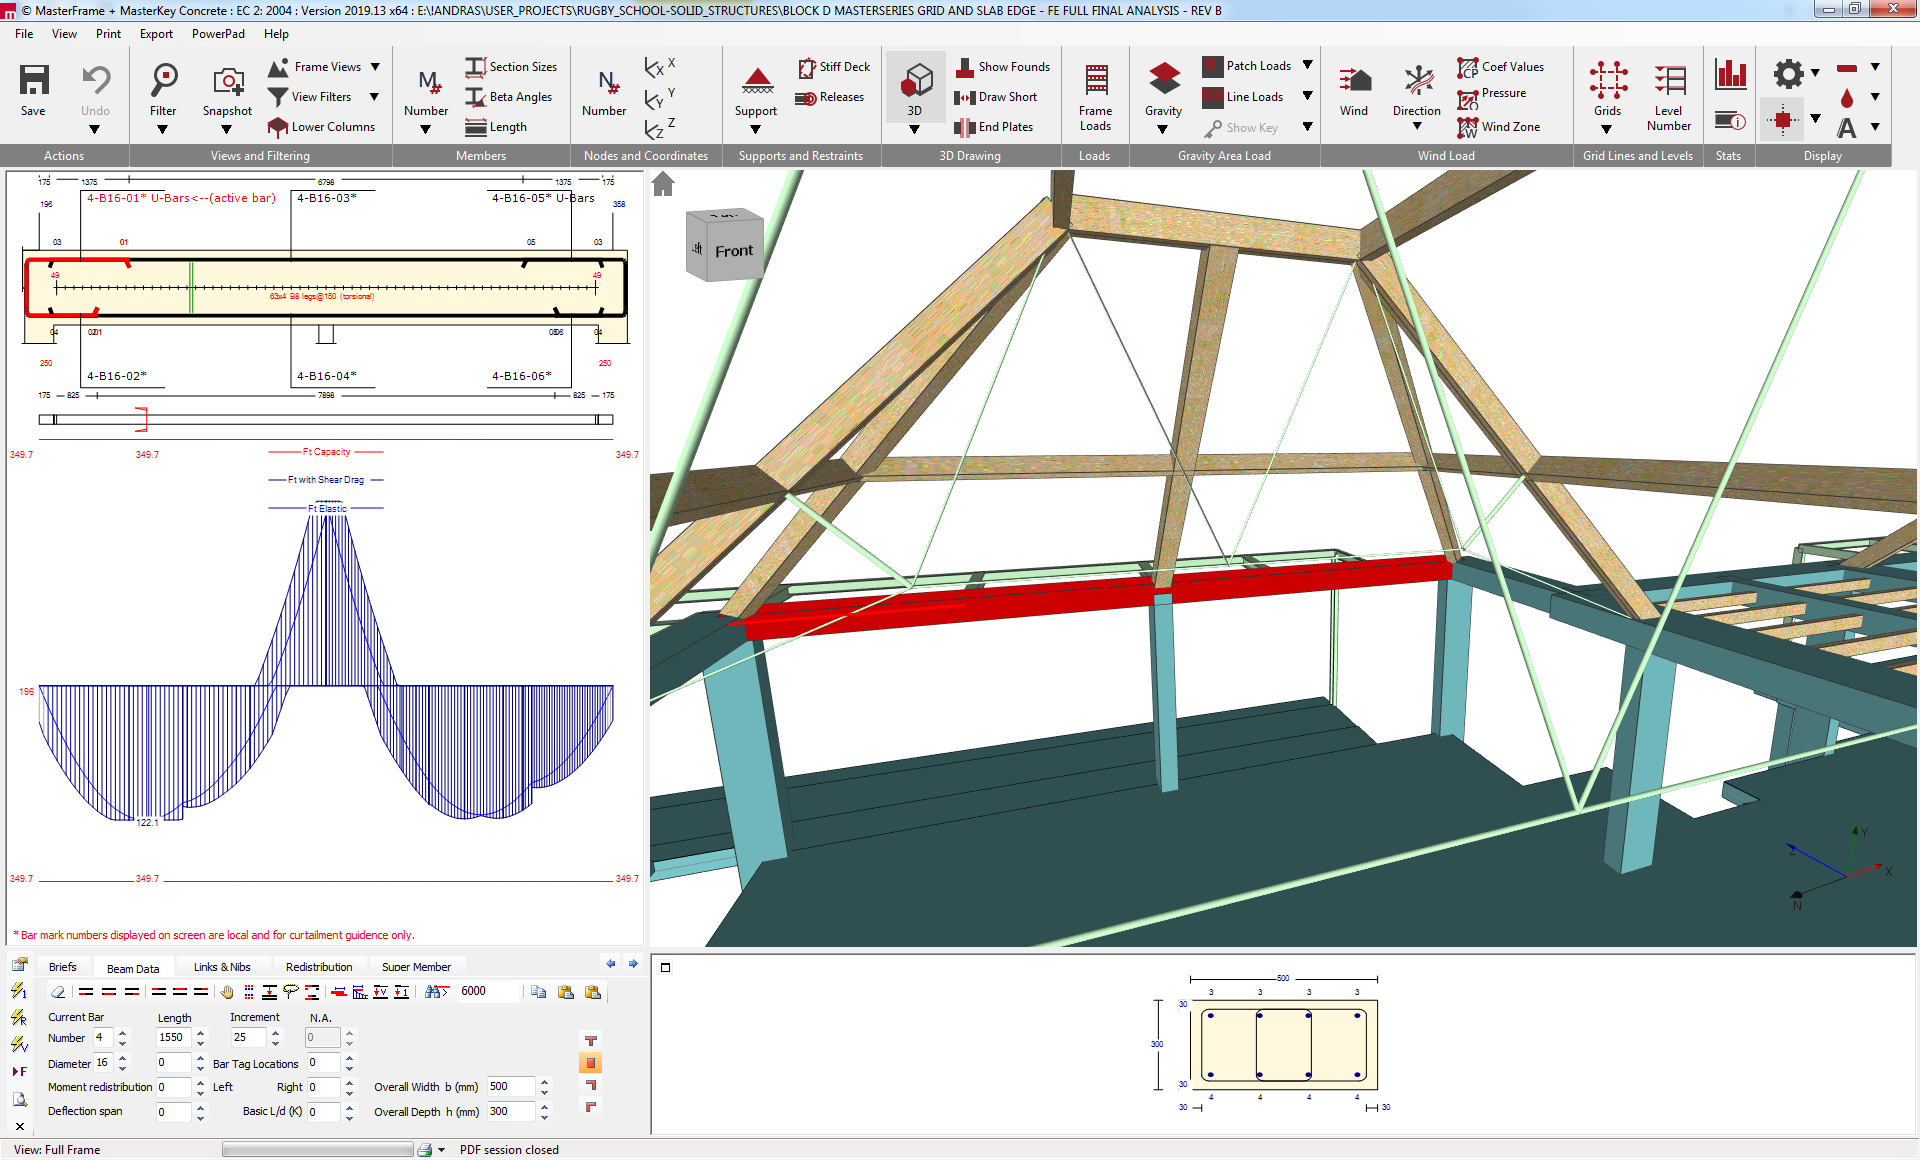 Design of the reinforced concrete ring beams